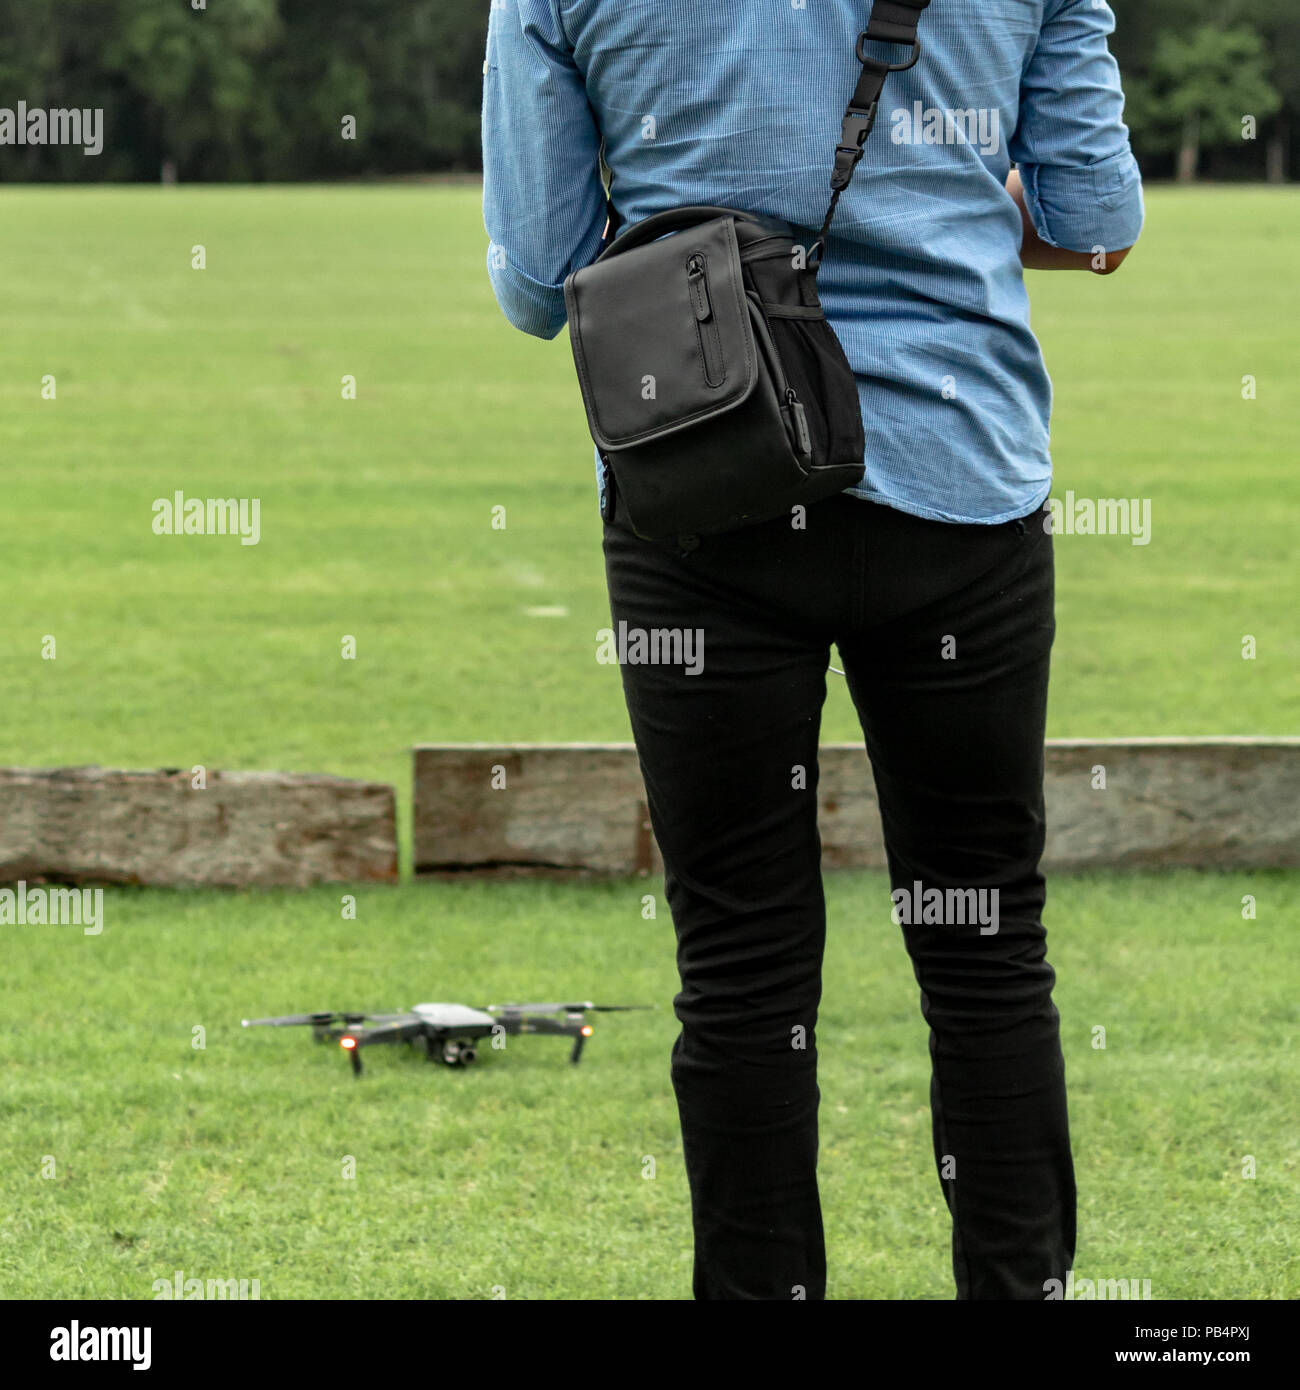 Learning to fly a drone. New technologies require a learning period. Mastering skills requires patience and practice. - Stock Image